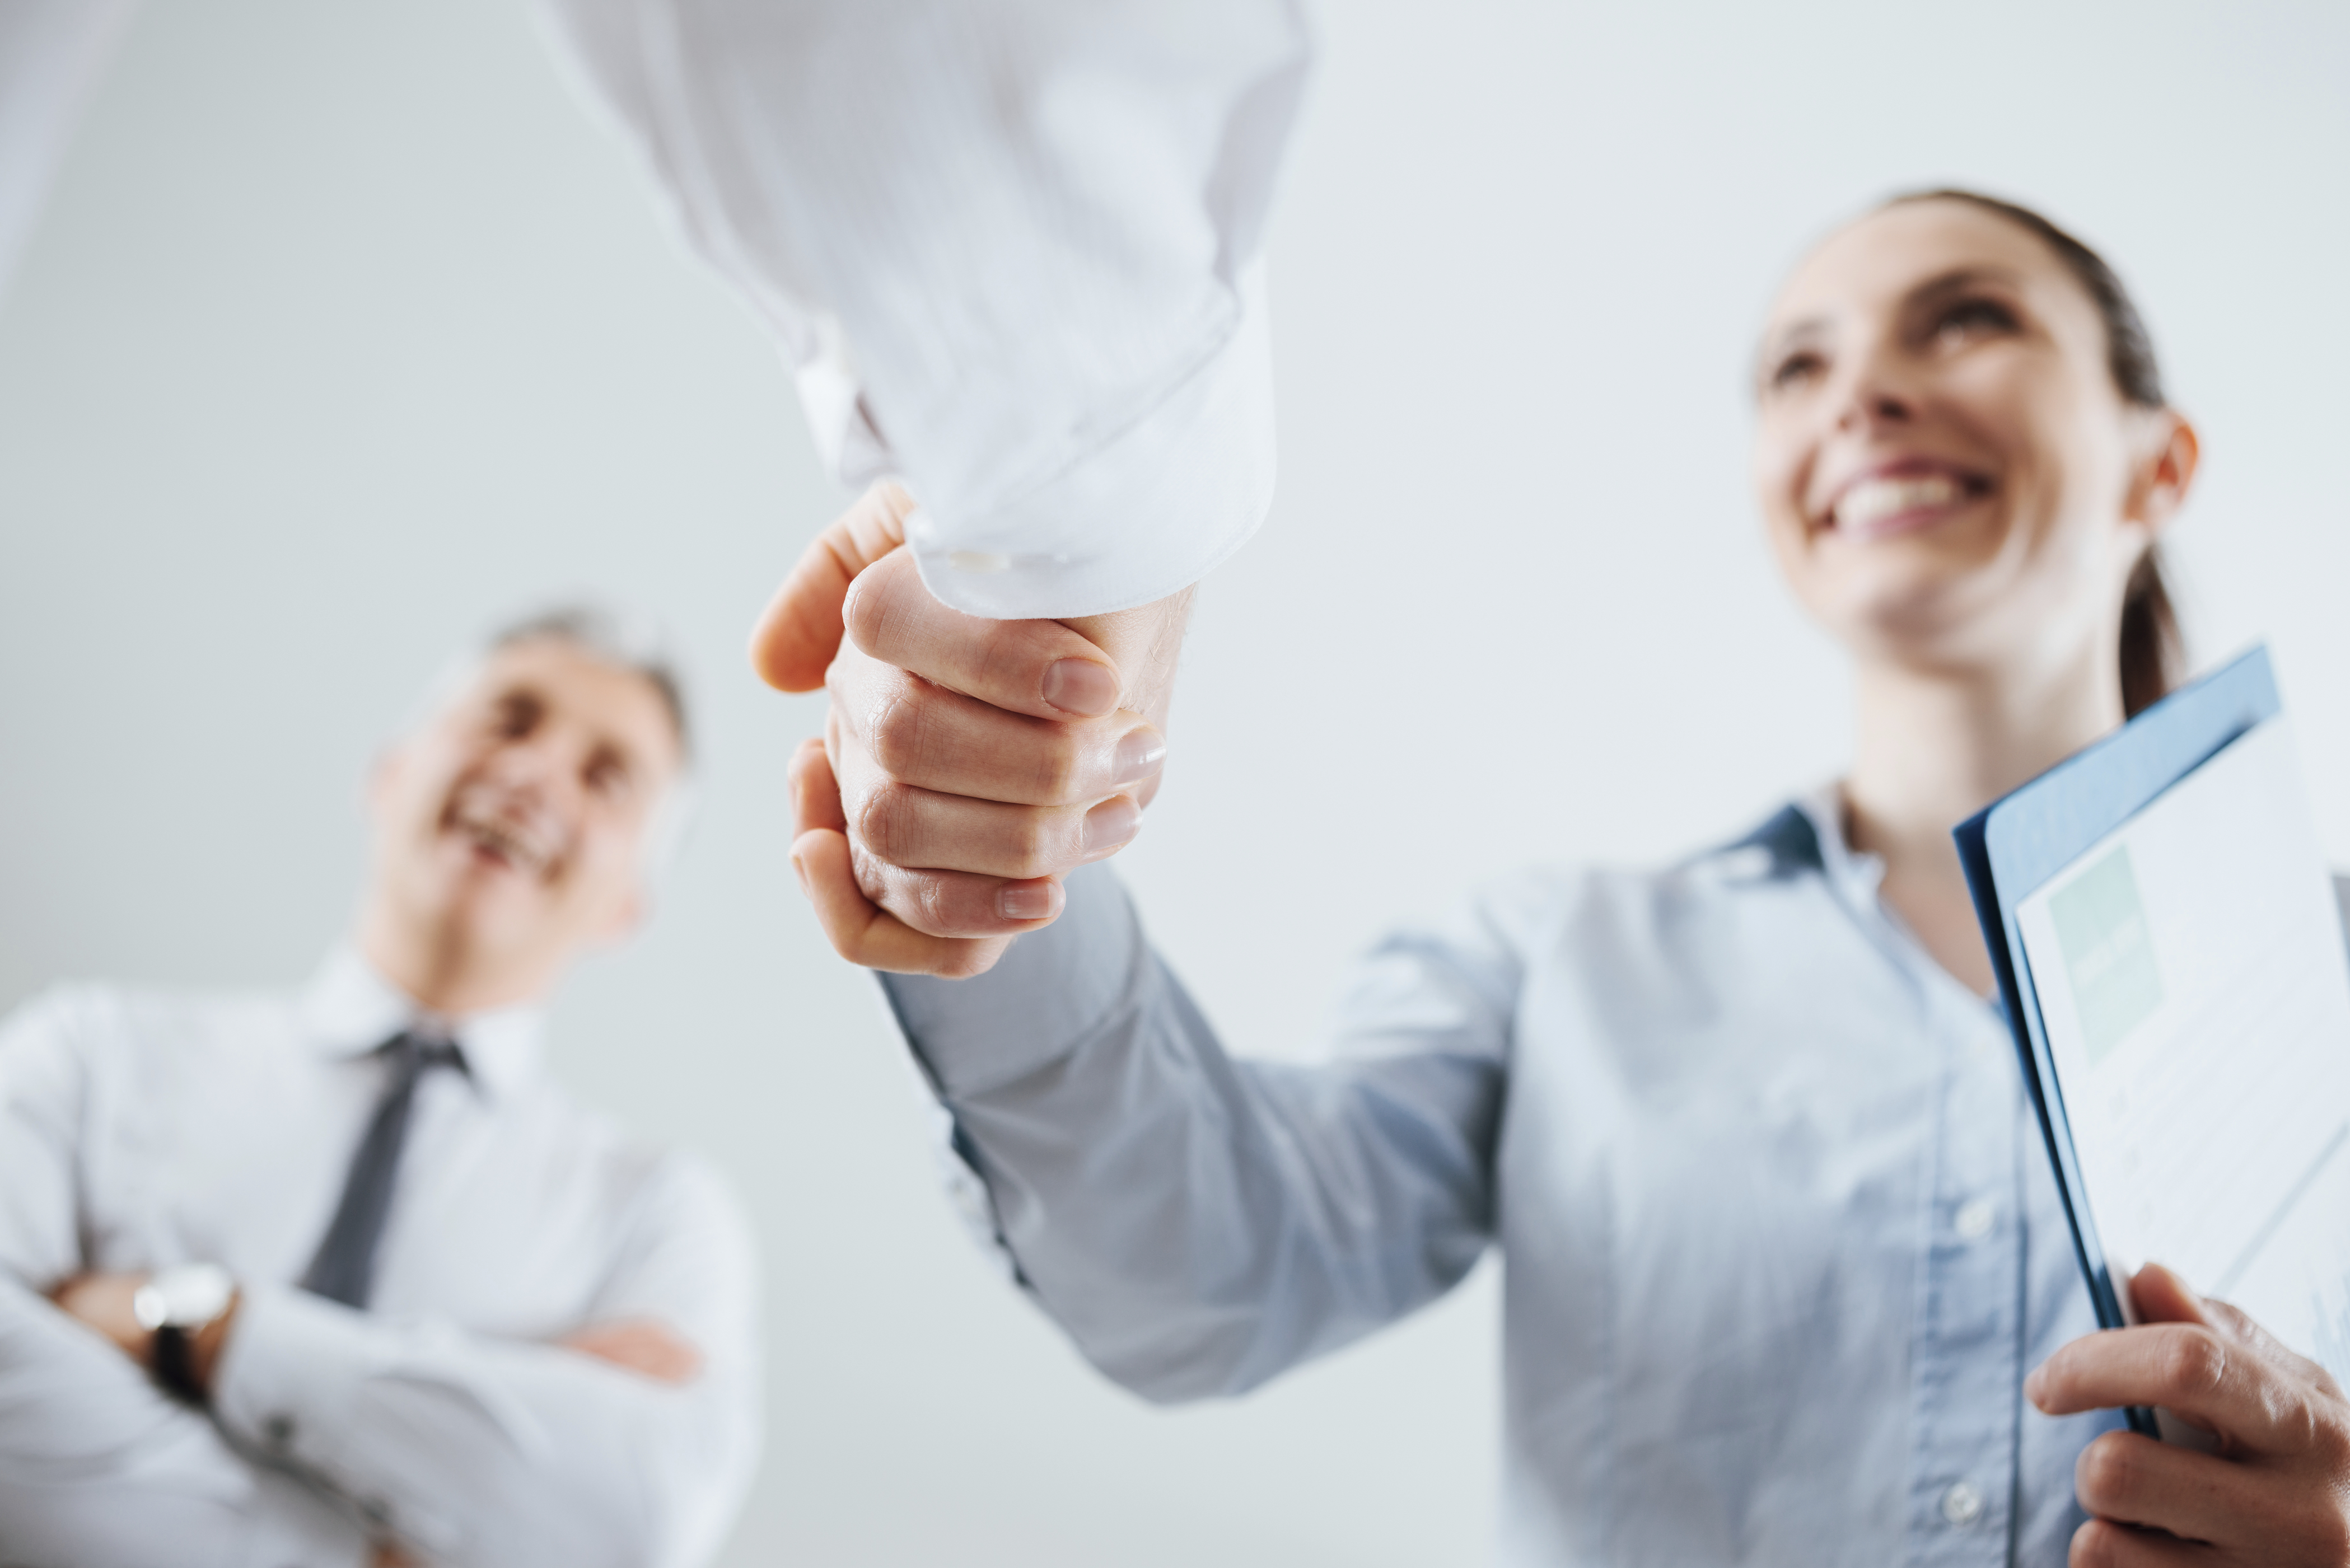 Confident business people shaking hands and woman smiling, recruitment and agreement concept